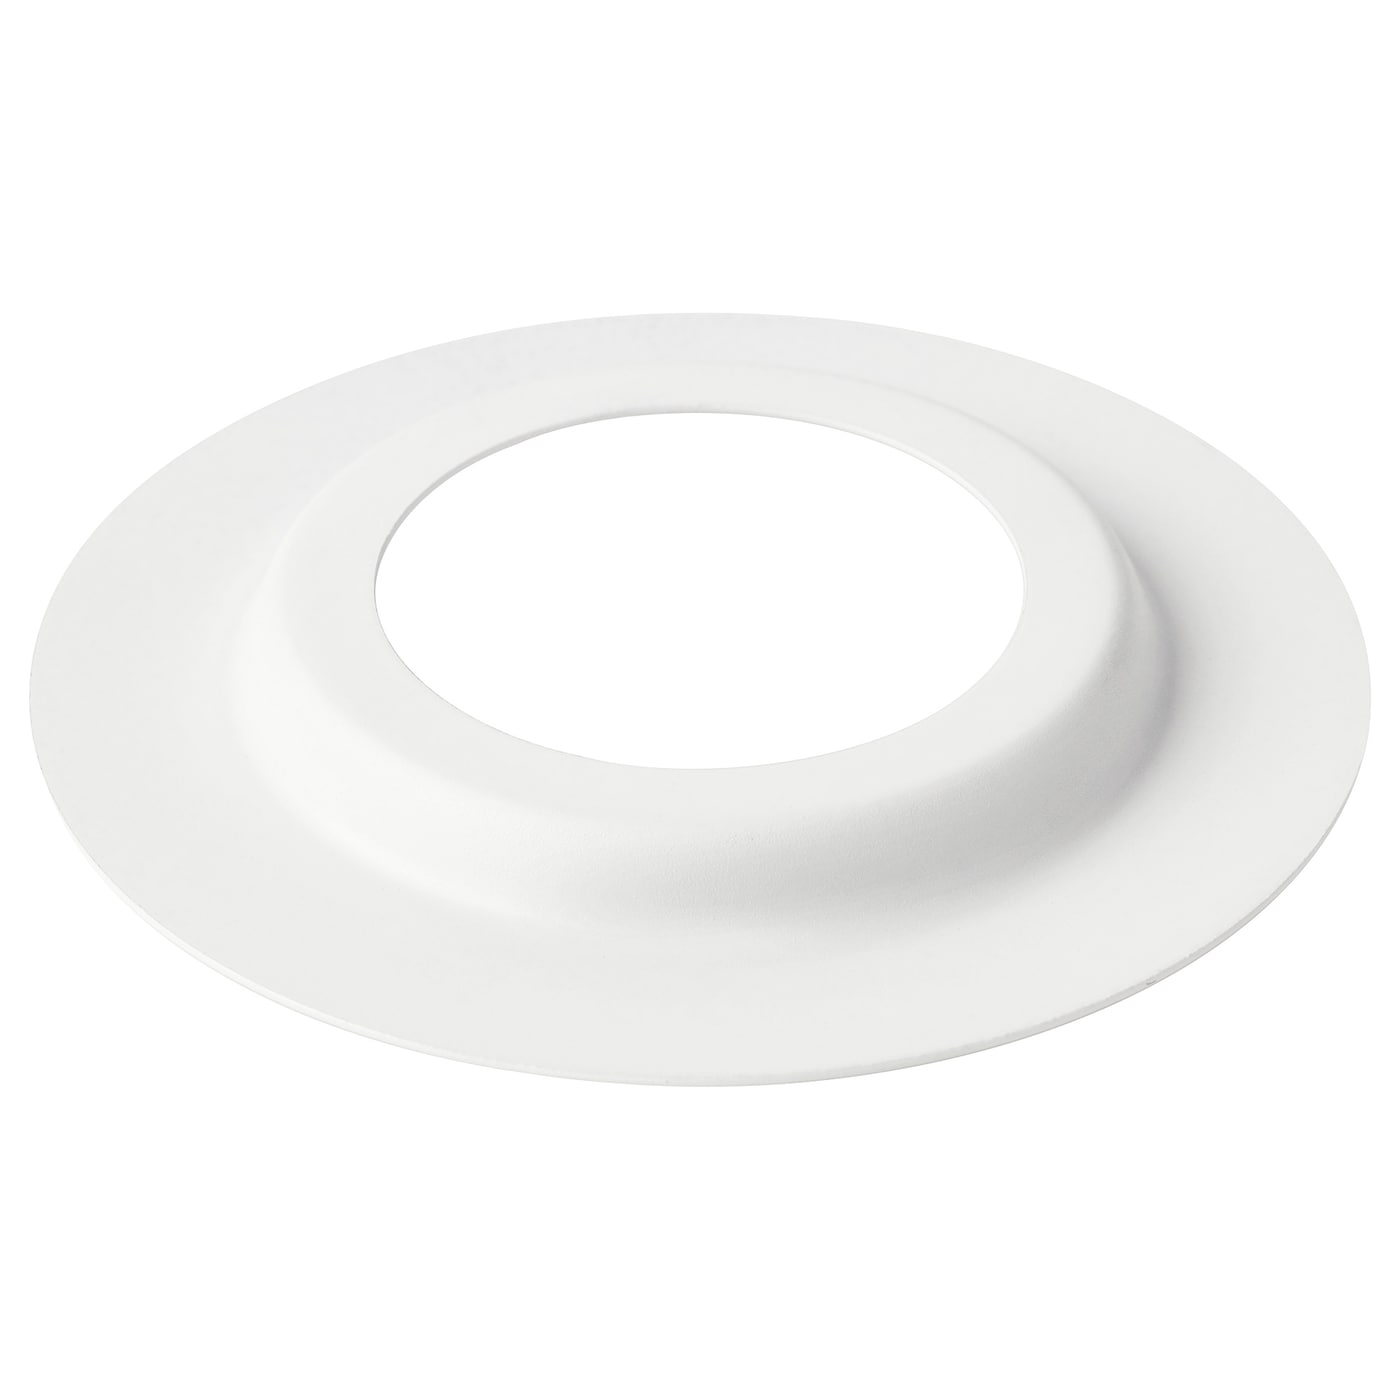 IKEA MONTERA shade ring